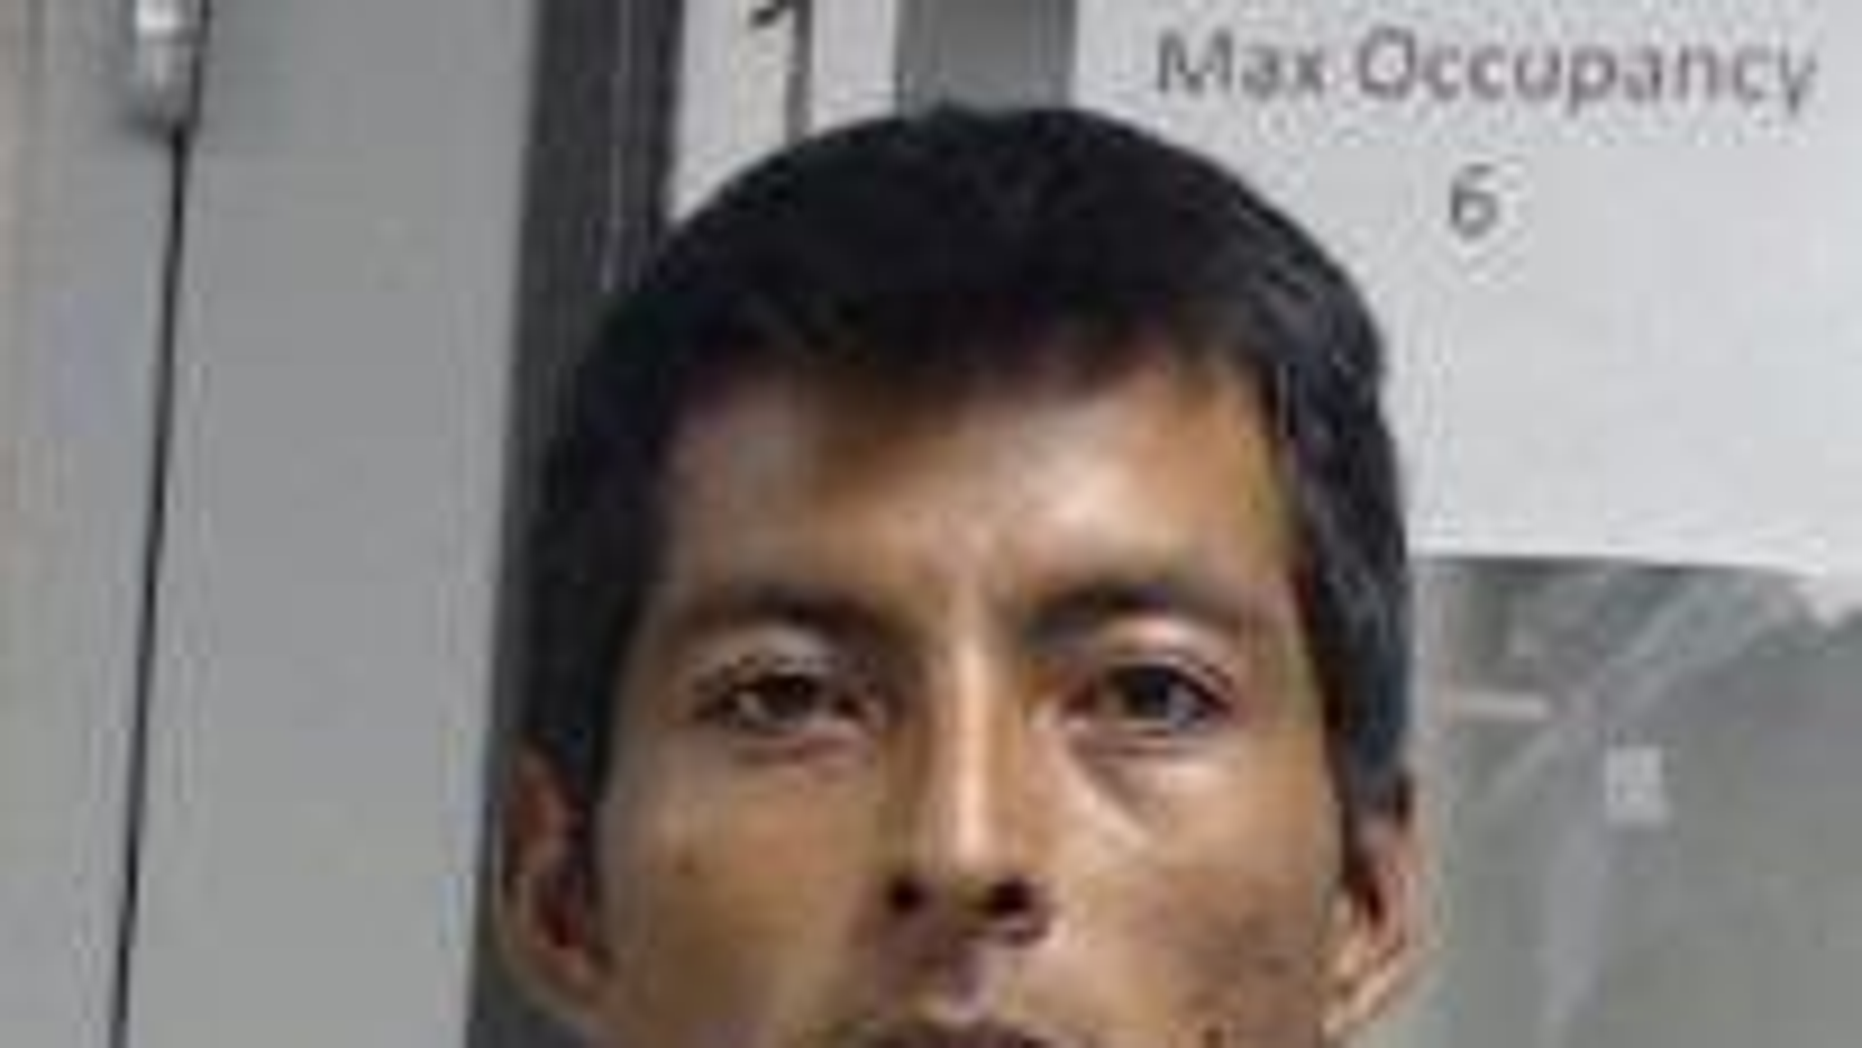 Manuel Lopez-Gomez, 28, was arrested on Thursday by Border Patrol agents. He's a member of MS-13, according to Customs and Border Protection.